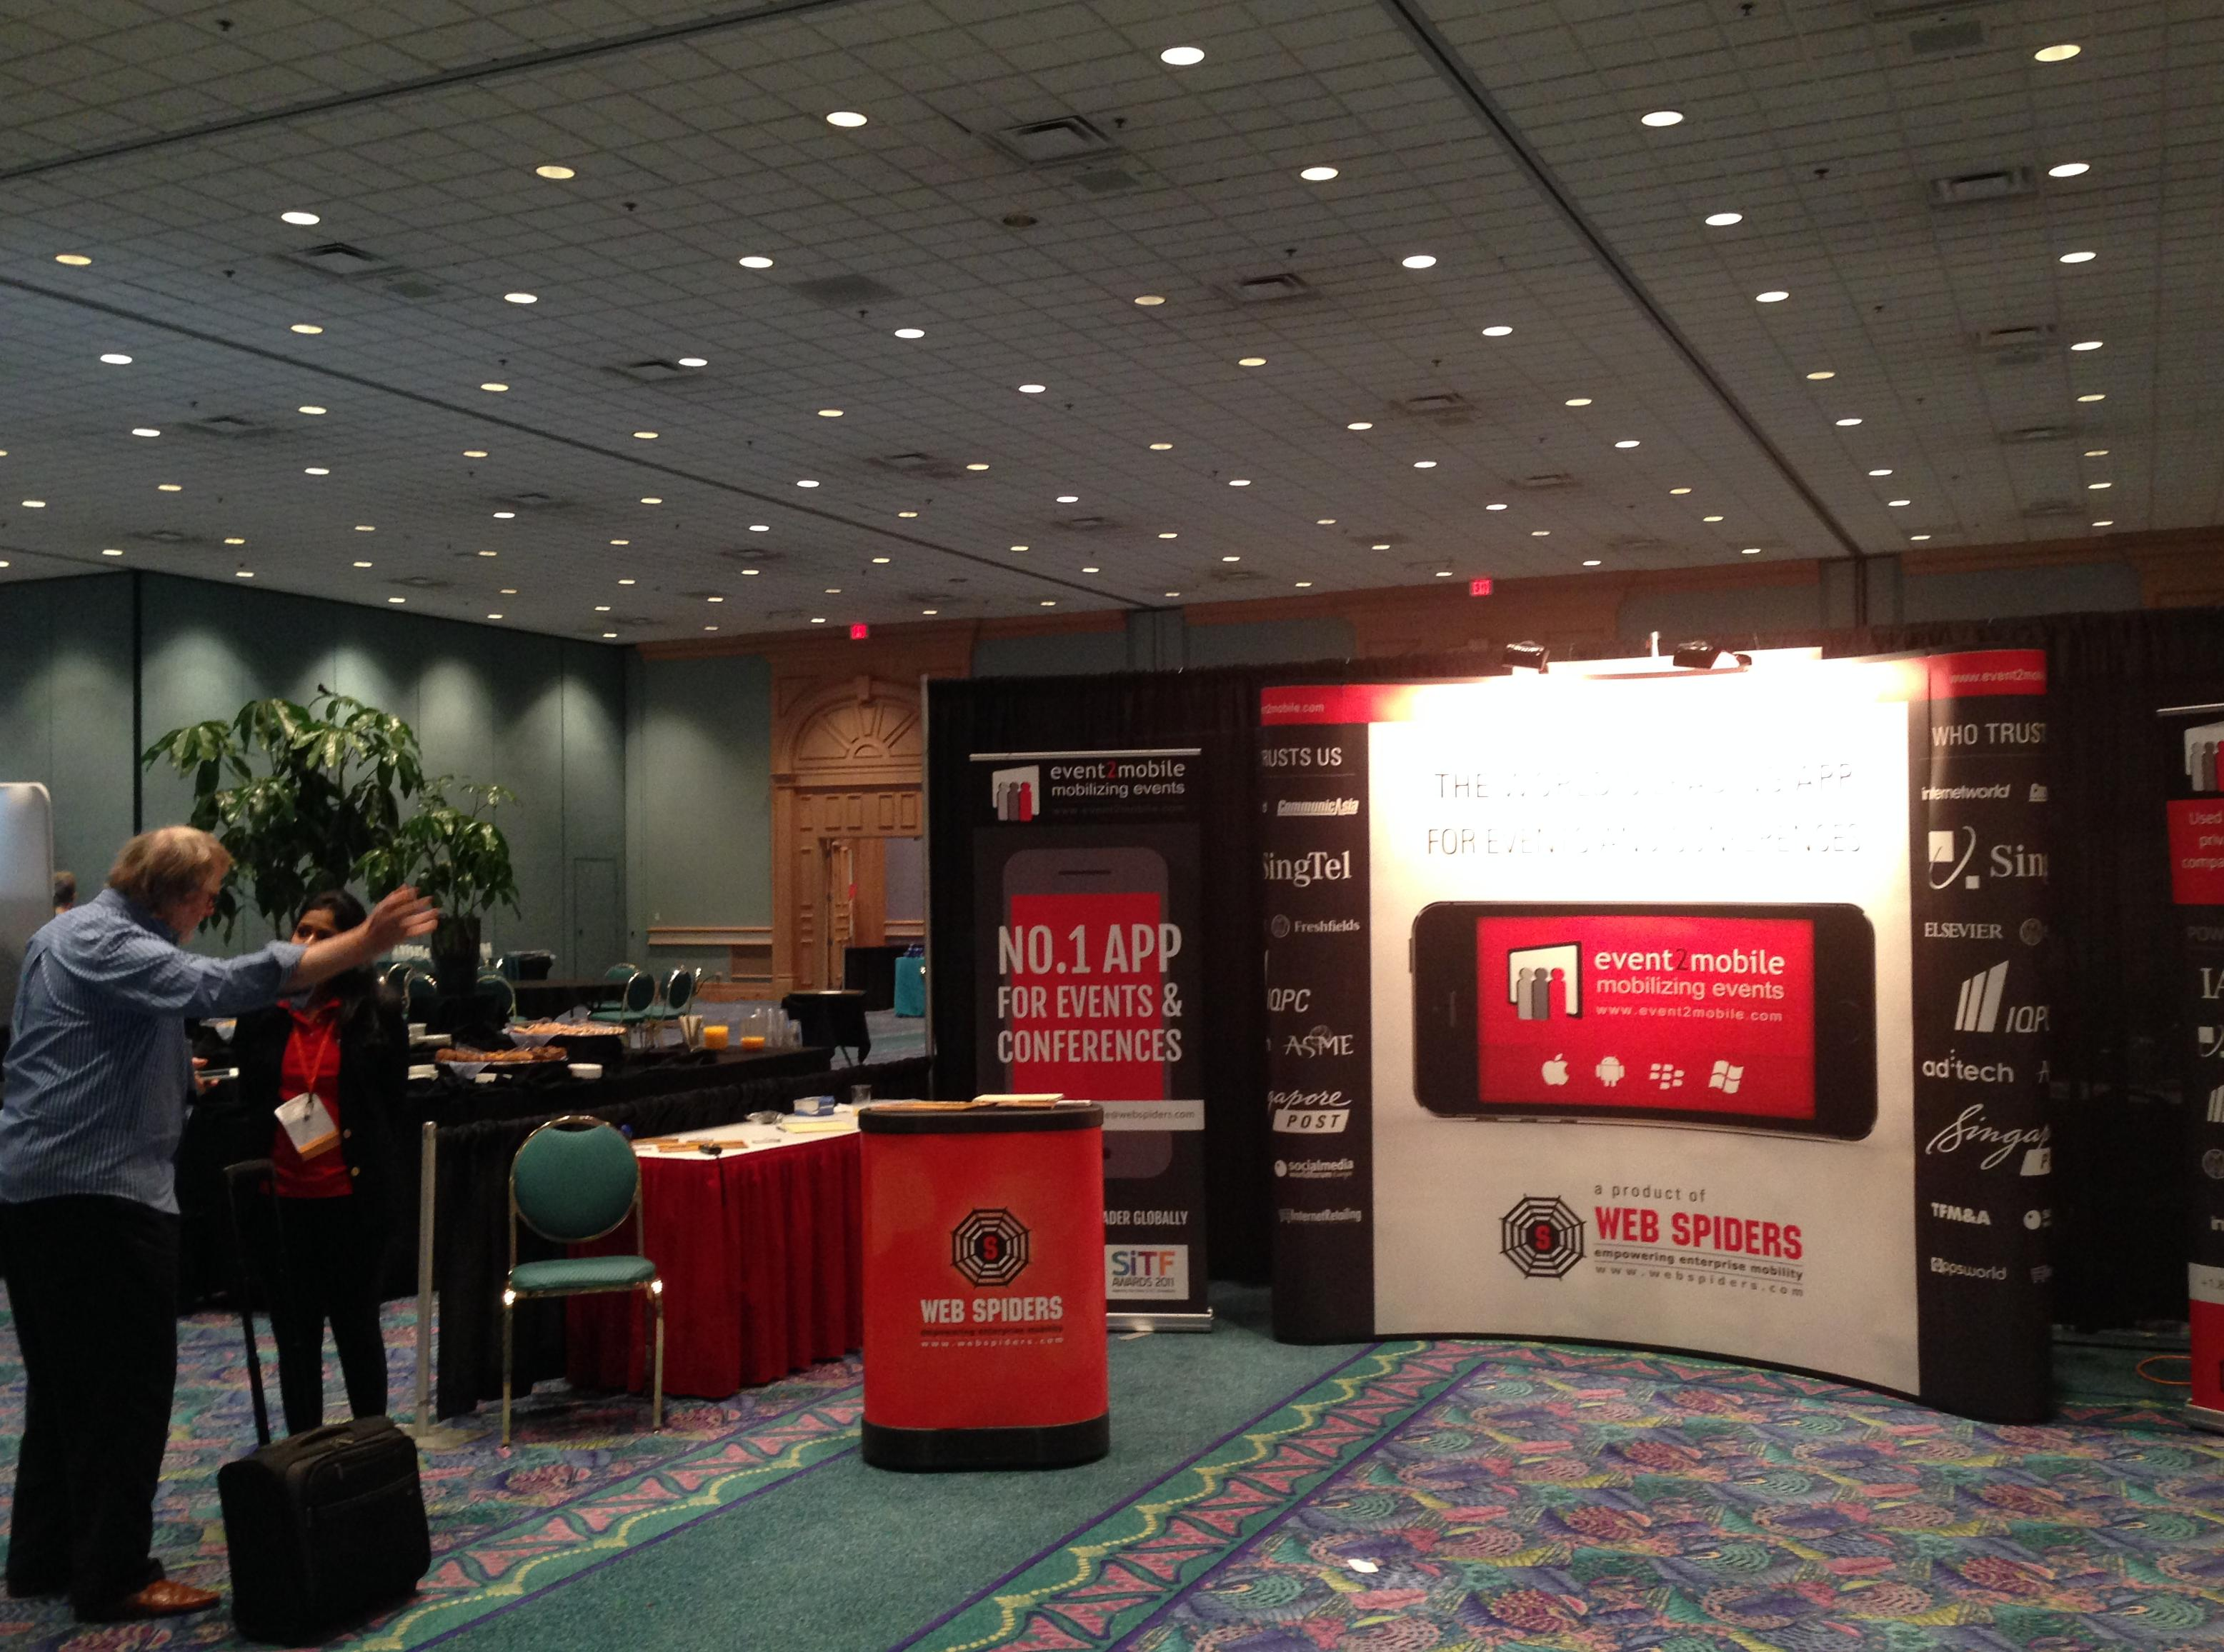 event2mobile was the Silver Sponsor at Meetings Technology Expo 2014, Chicago